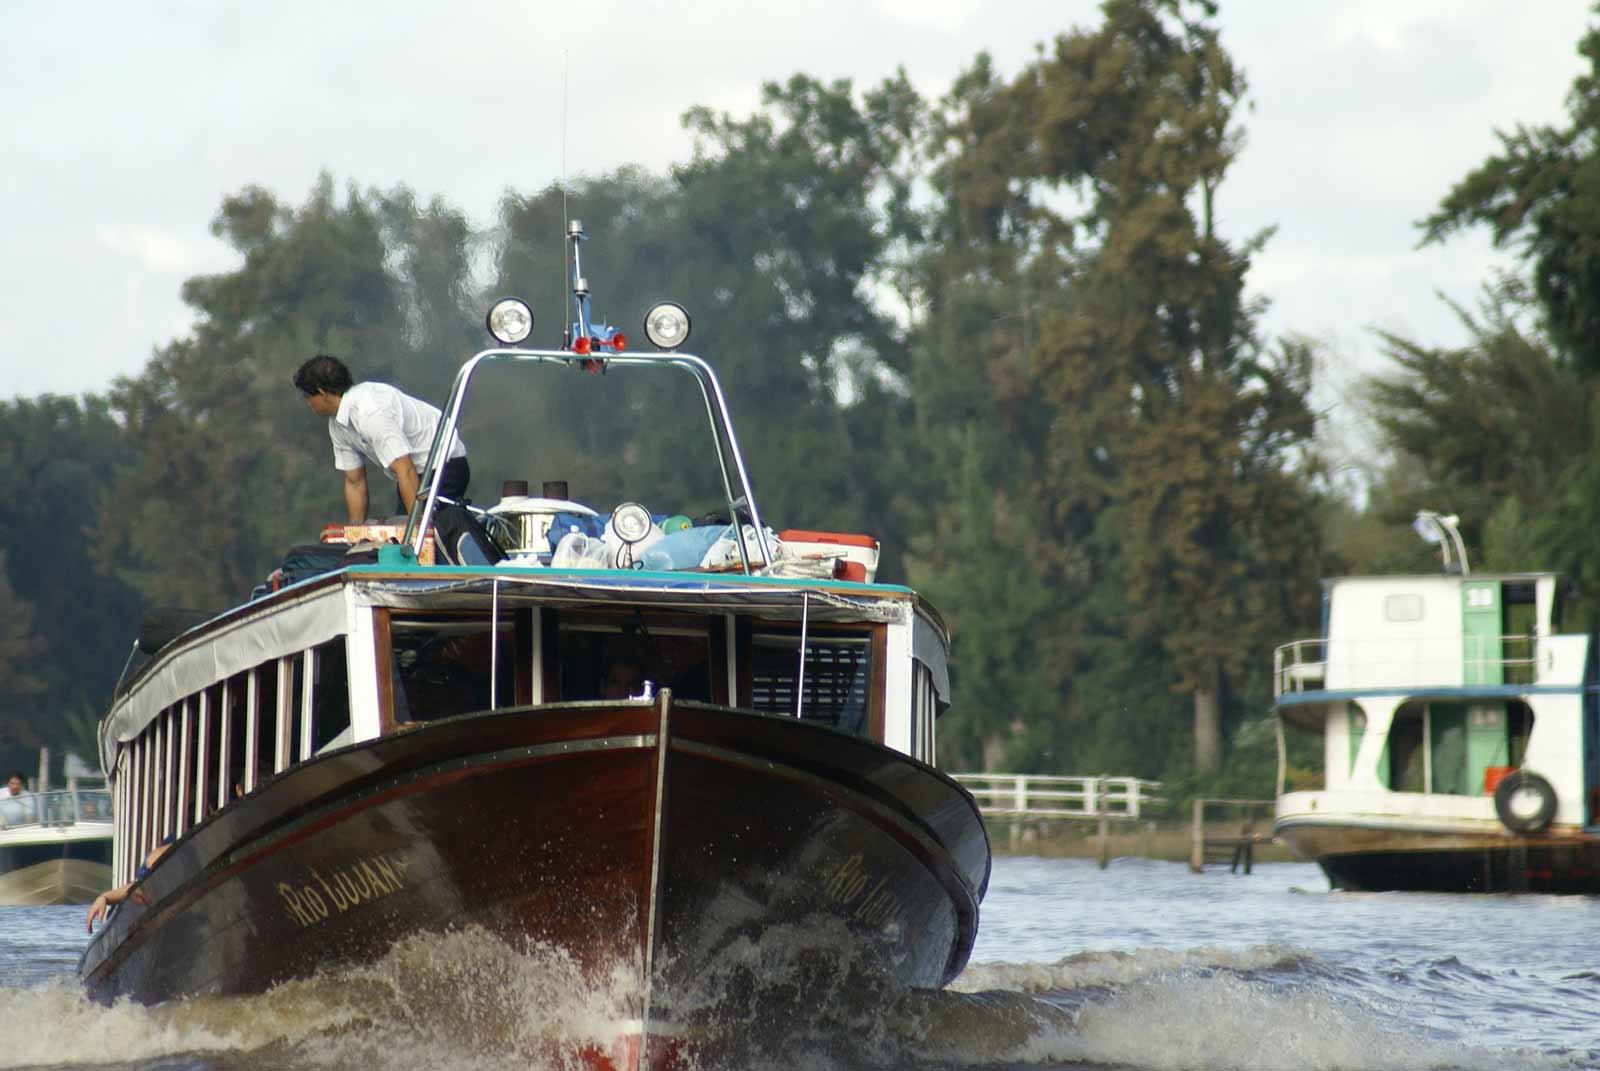 How Boat Rental Companies Save Money with GPS Tracking